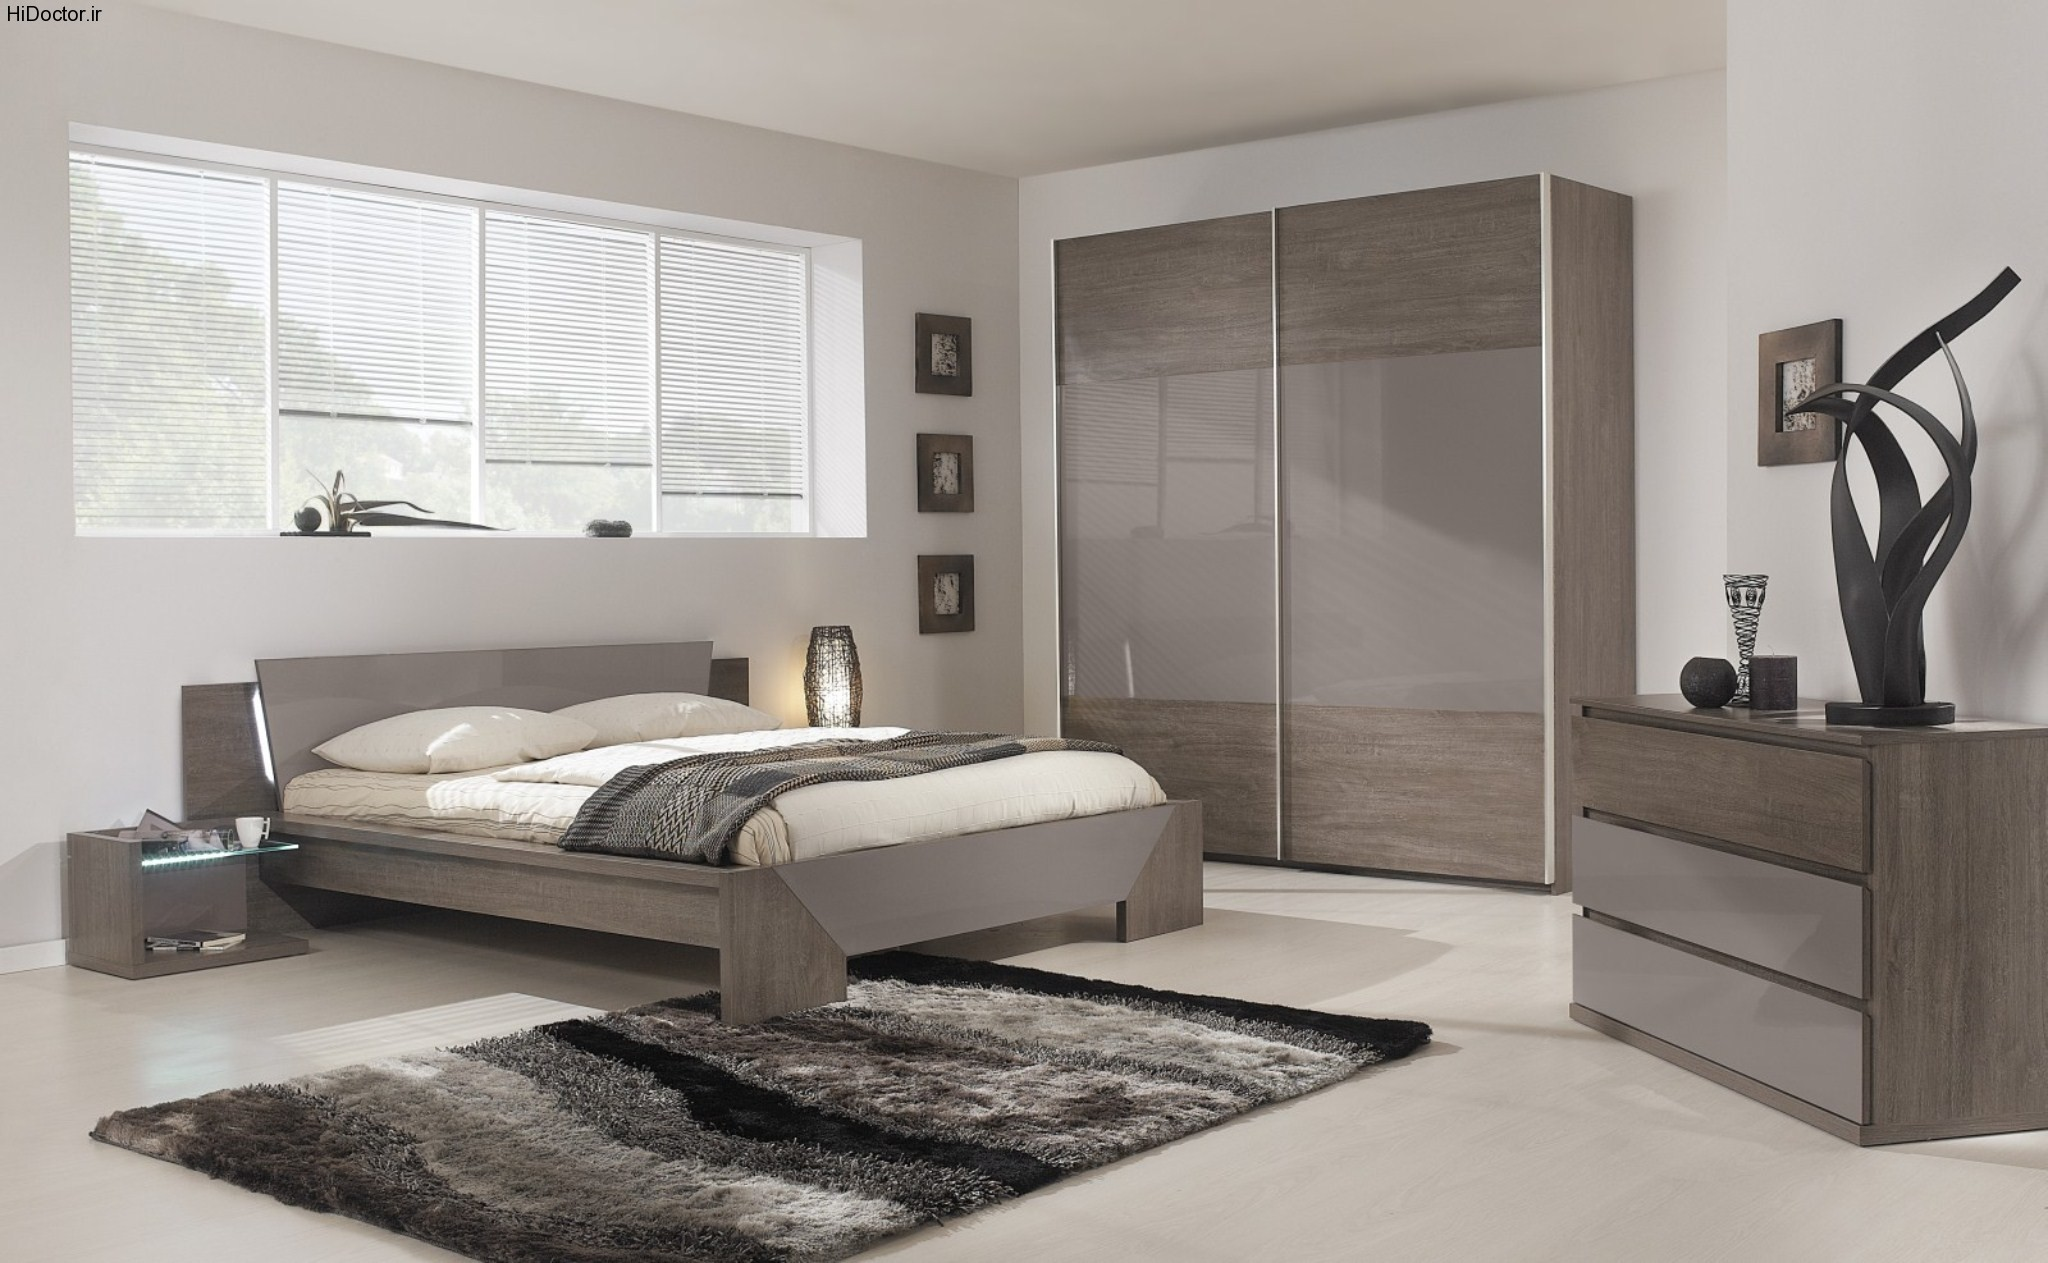 چیدمان و دکوراسیون اتاق خواب 15503 | master bedroom dresser ideas with large bedroom dresser units and elegant color schemes